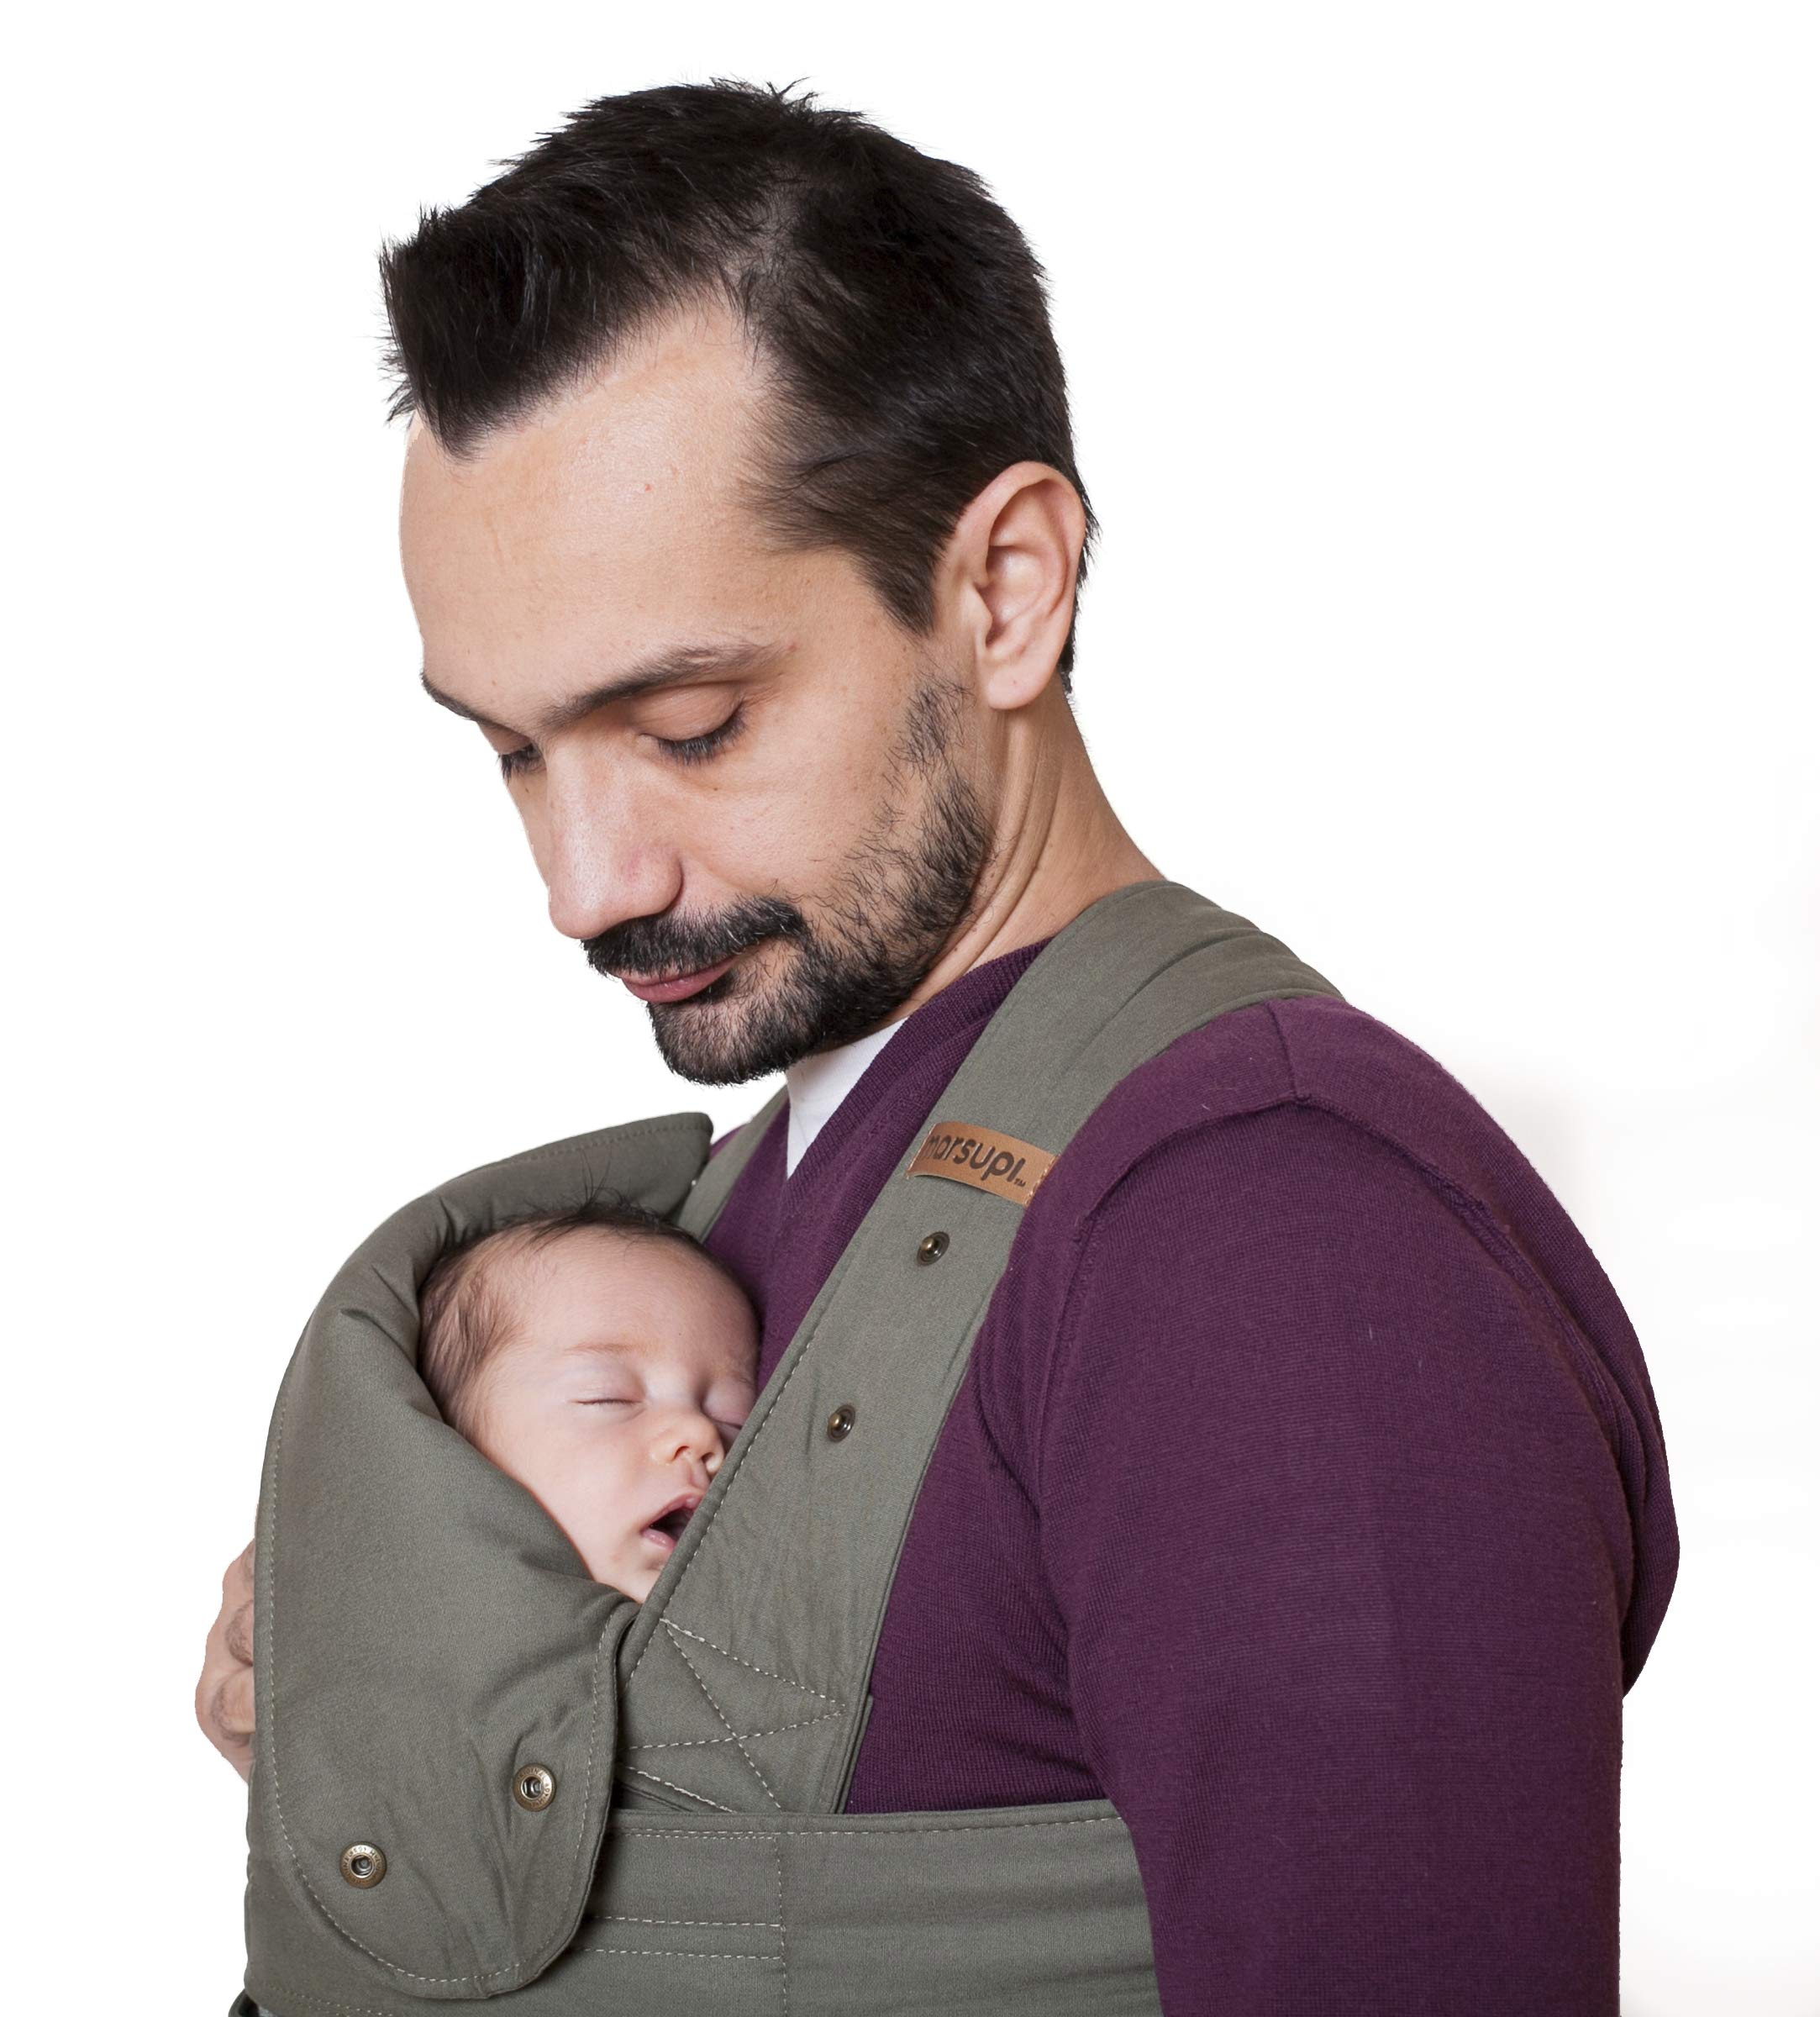 marsupi Baby and Child Carrier, Version 2.0 Classic (Olive/Oliv, XL) Marsupi Particularly compact and lightweight front & hip carrier (weight approx. 400 g) that fits in any pocket. Revised Version 2.0 Easy to put on thanks to unique Velcro system. 100% organic cotton, made in Europe. Machine washable up to 30°. Perfect support for the little ones, optimum weight distribution for the parents, wide base for orthopaedically correct posture (M position) and thigh support for your growing child 5